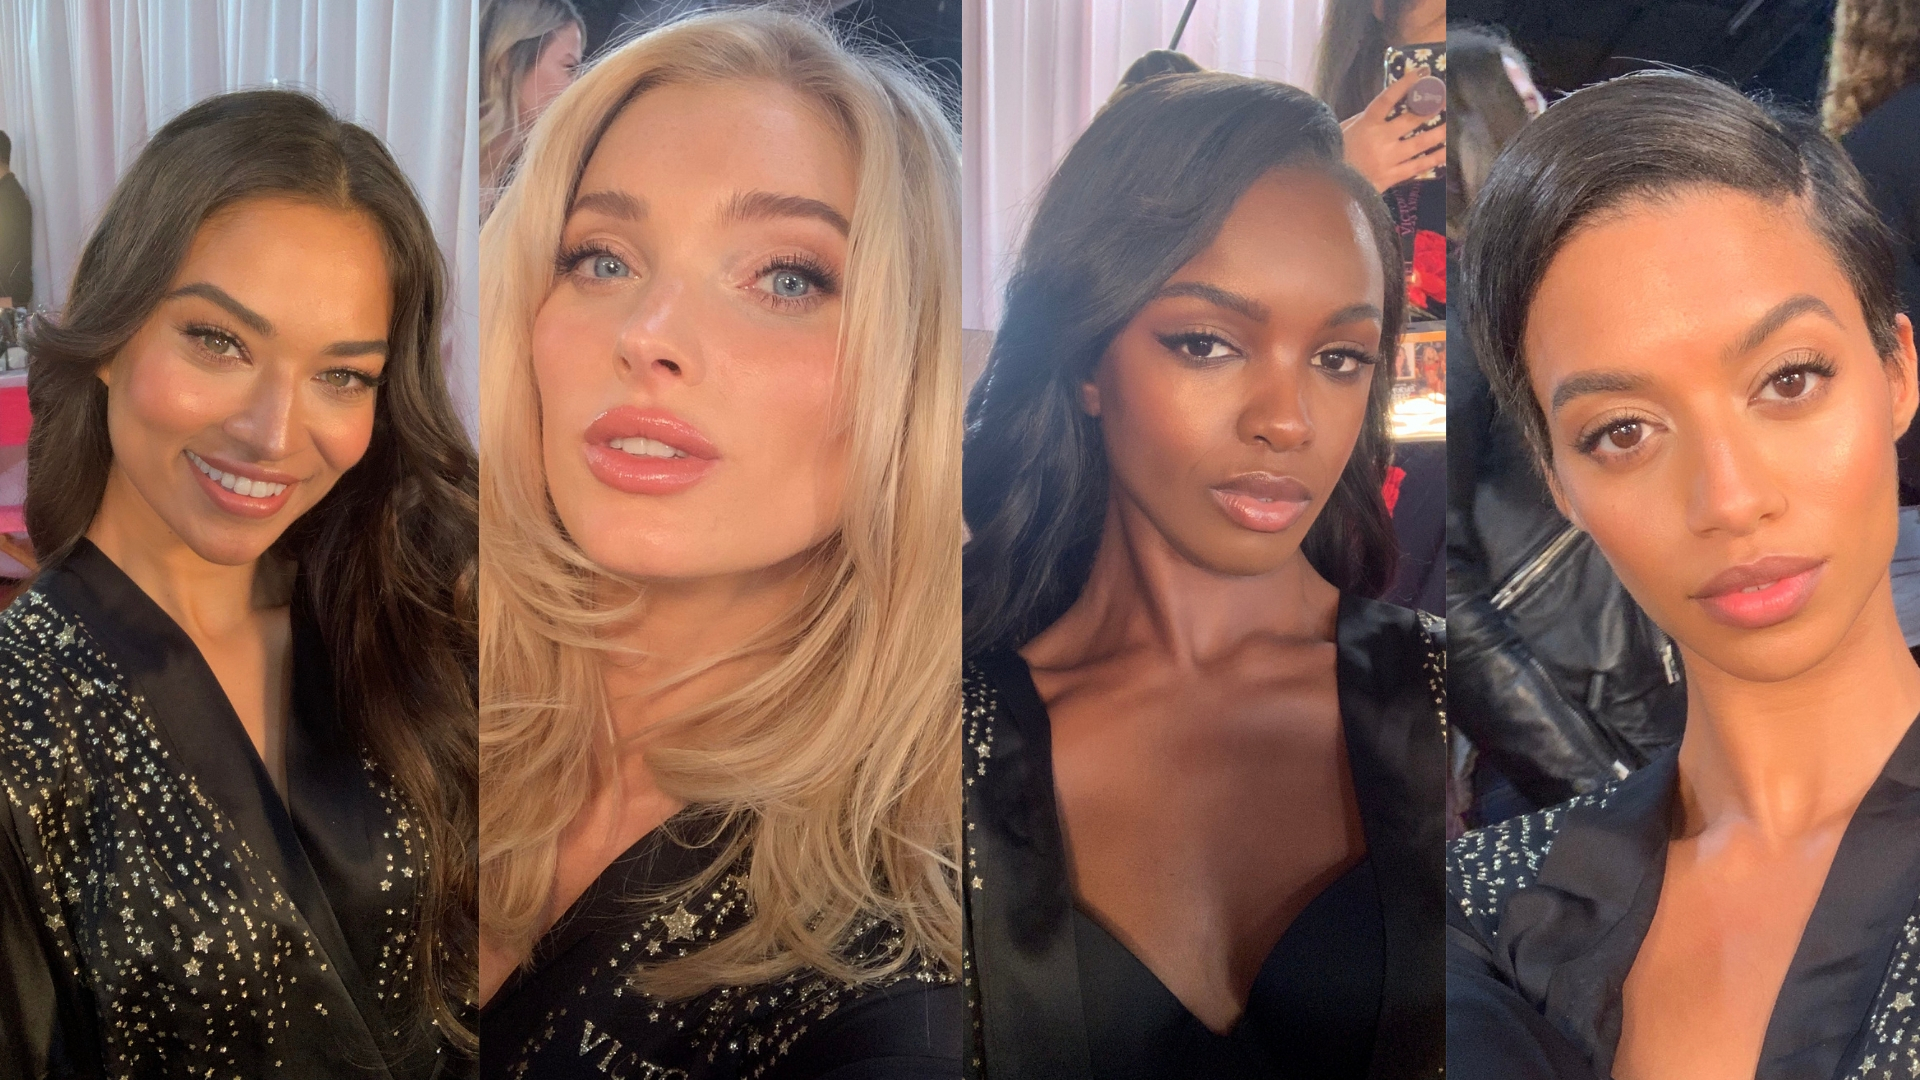 4 Victoria's Secret Angels Reveal How To Take The Perfect Selfie